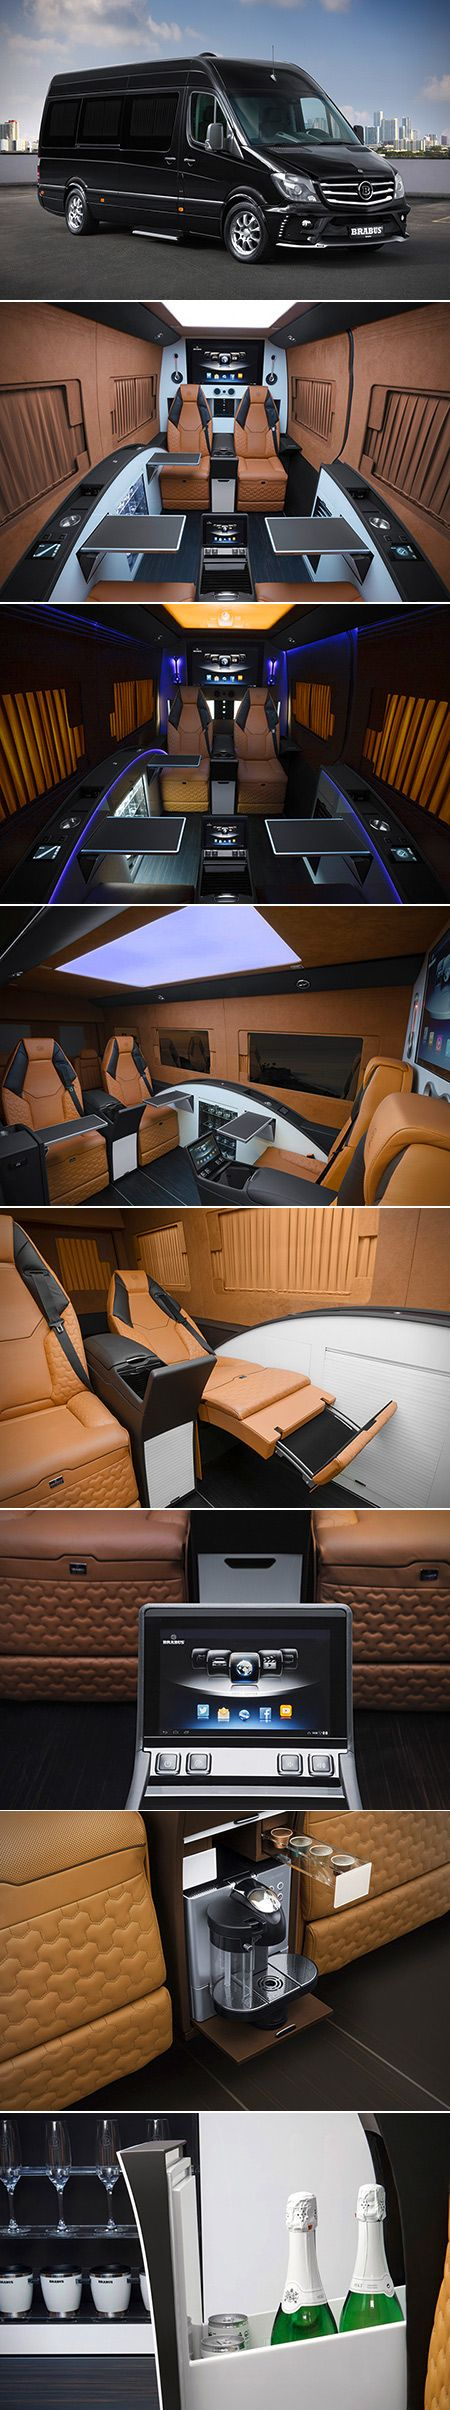 This is Not the Interior of a Spaceship, Just the Mercedes-Benz Brabus Sprinter X